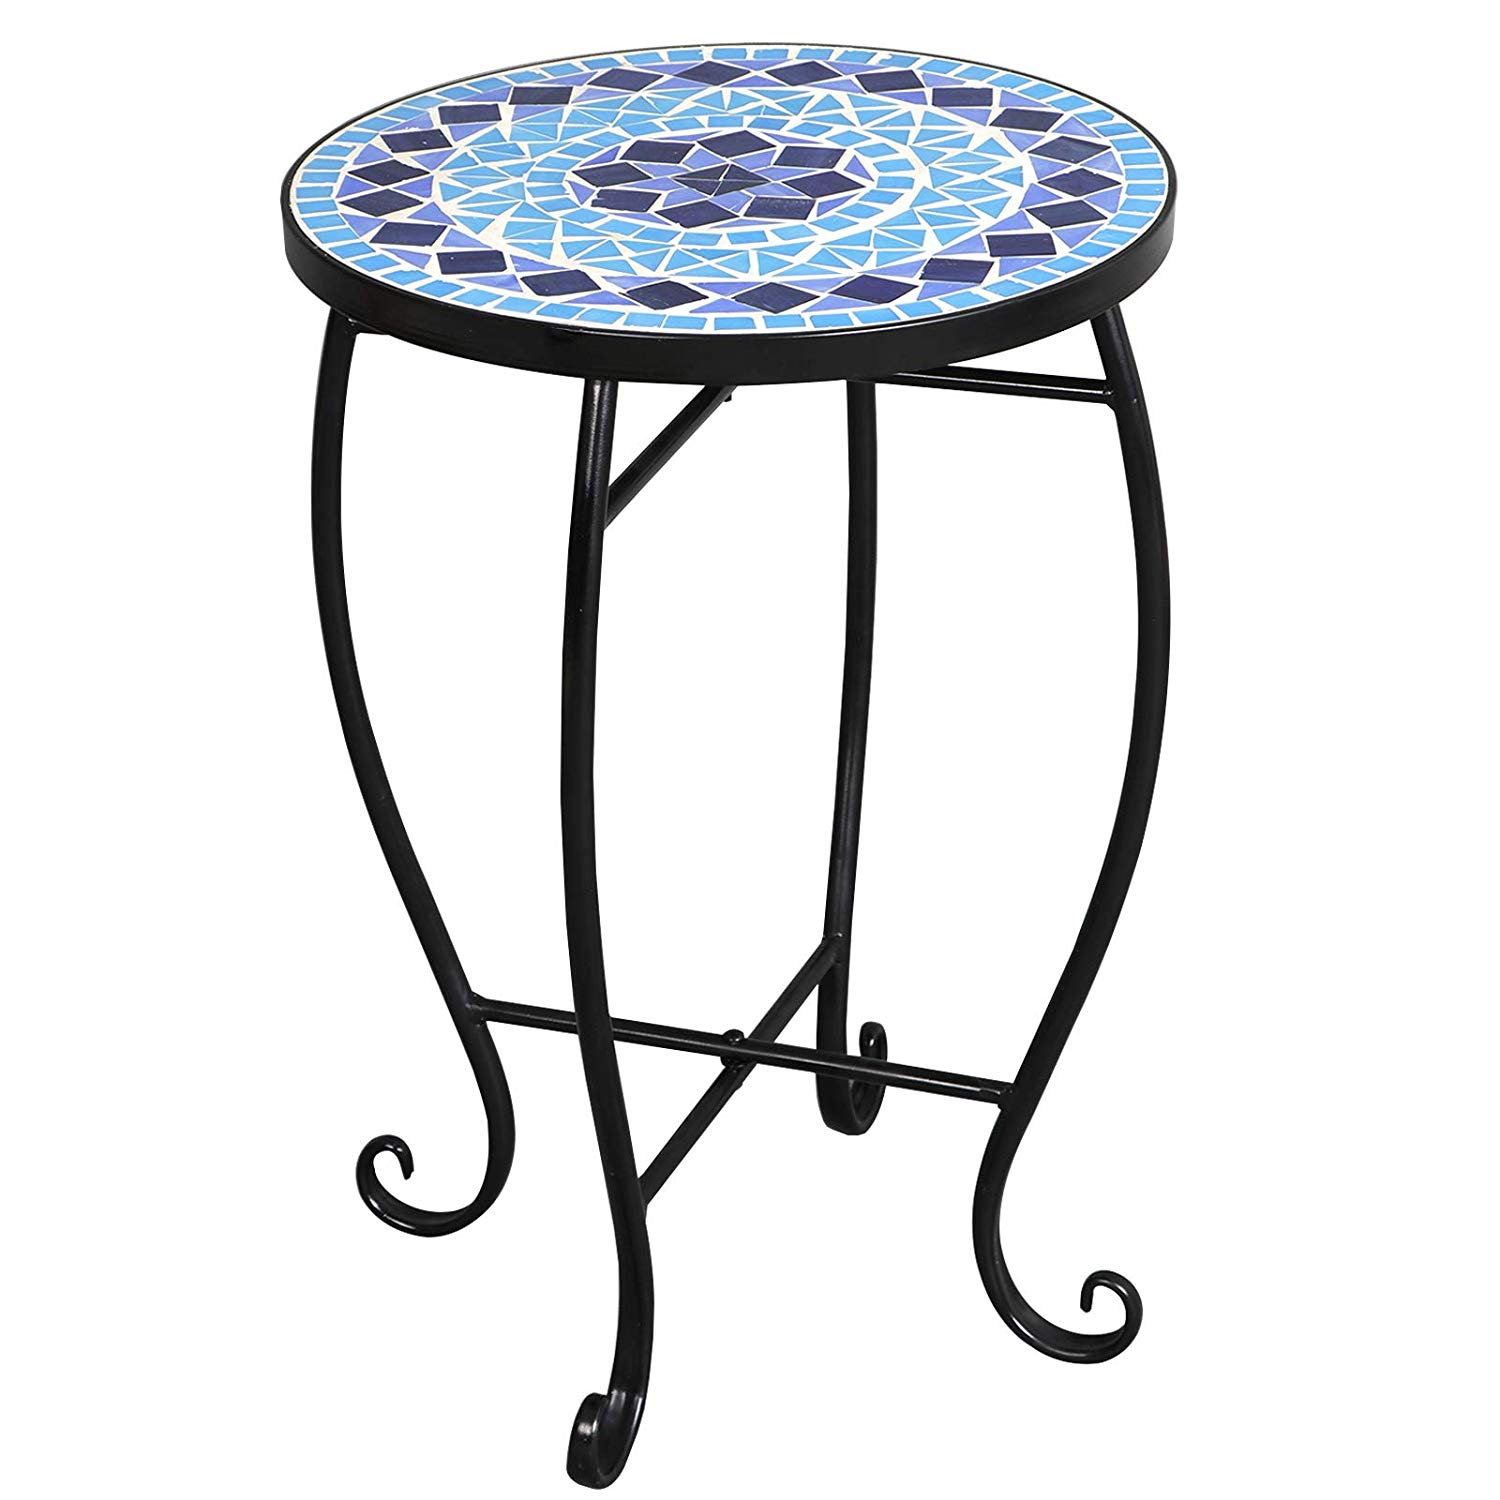 mosaic round side table plant stand floor flower pots tile outdoor accent rack planter holder decor potted containers shelf display for home patio garden indoor iron best